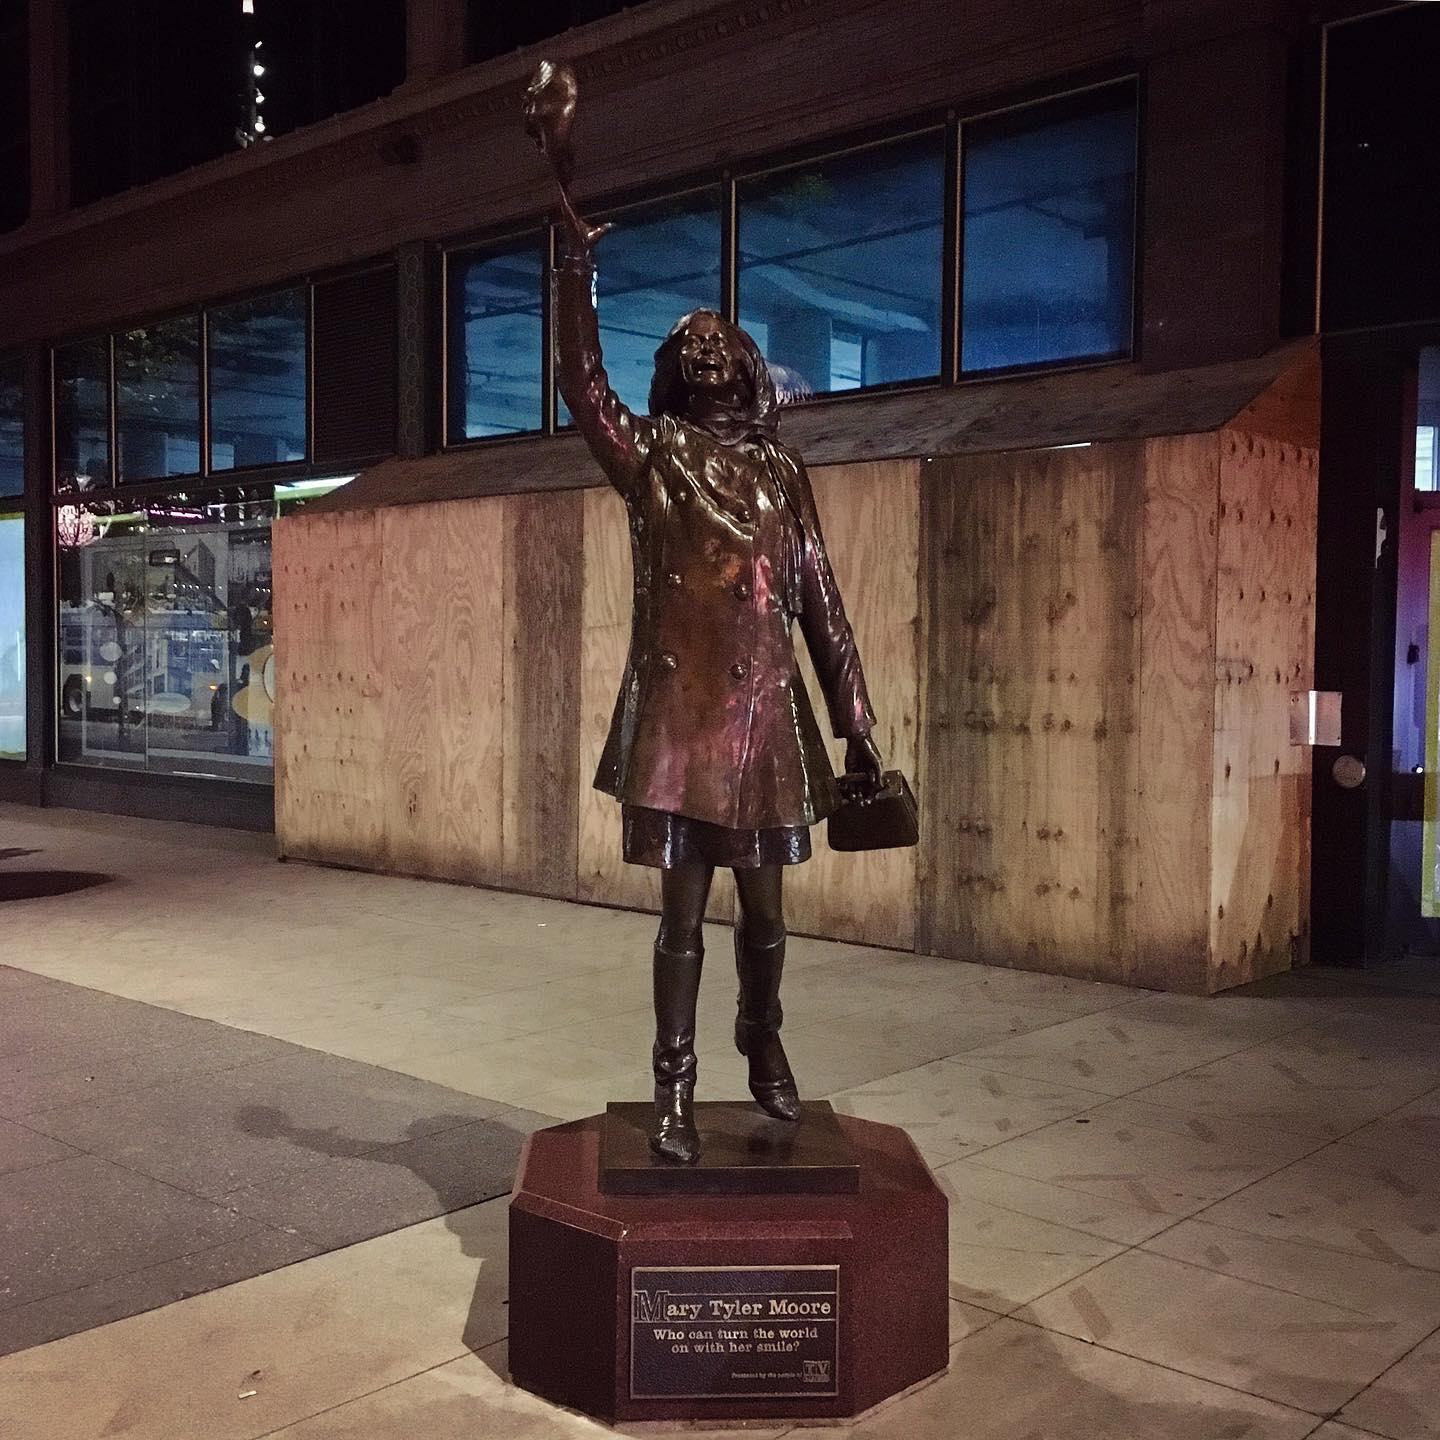 Mary Tyler Moore made it after all, in Minneapolis, MN.